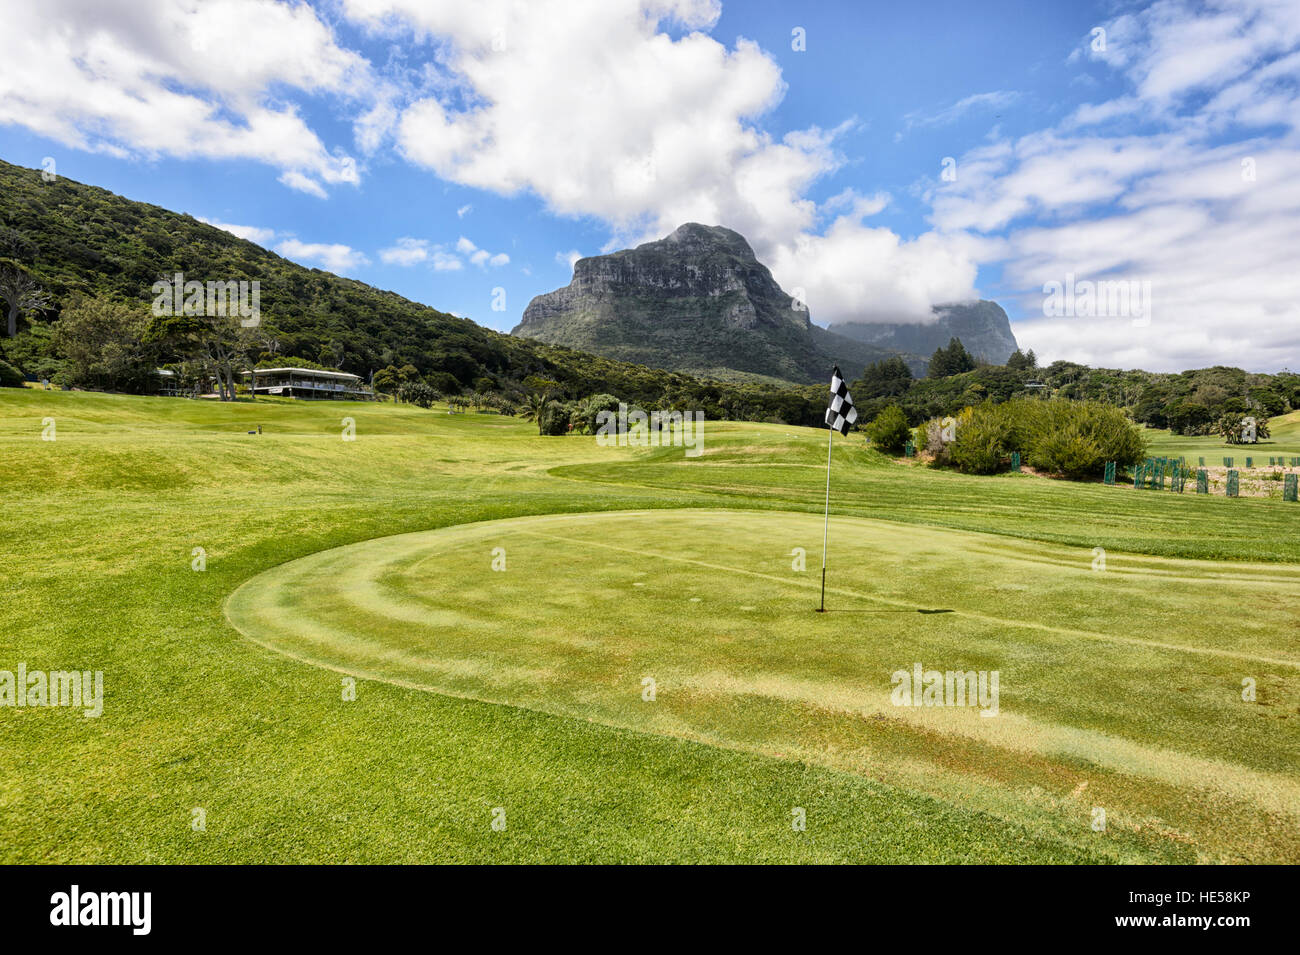 Golf course, Lord Howe Island, New South Wales, NSW, Australia - Stock Image